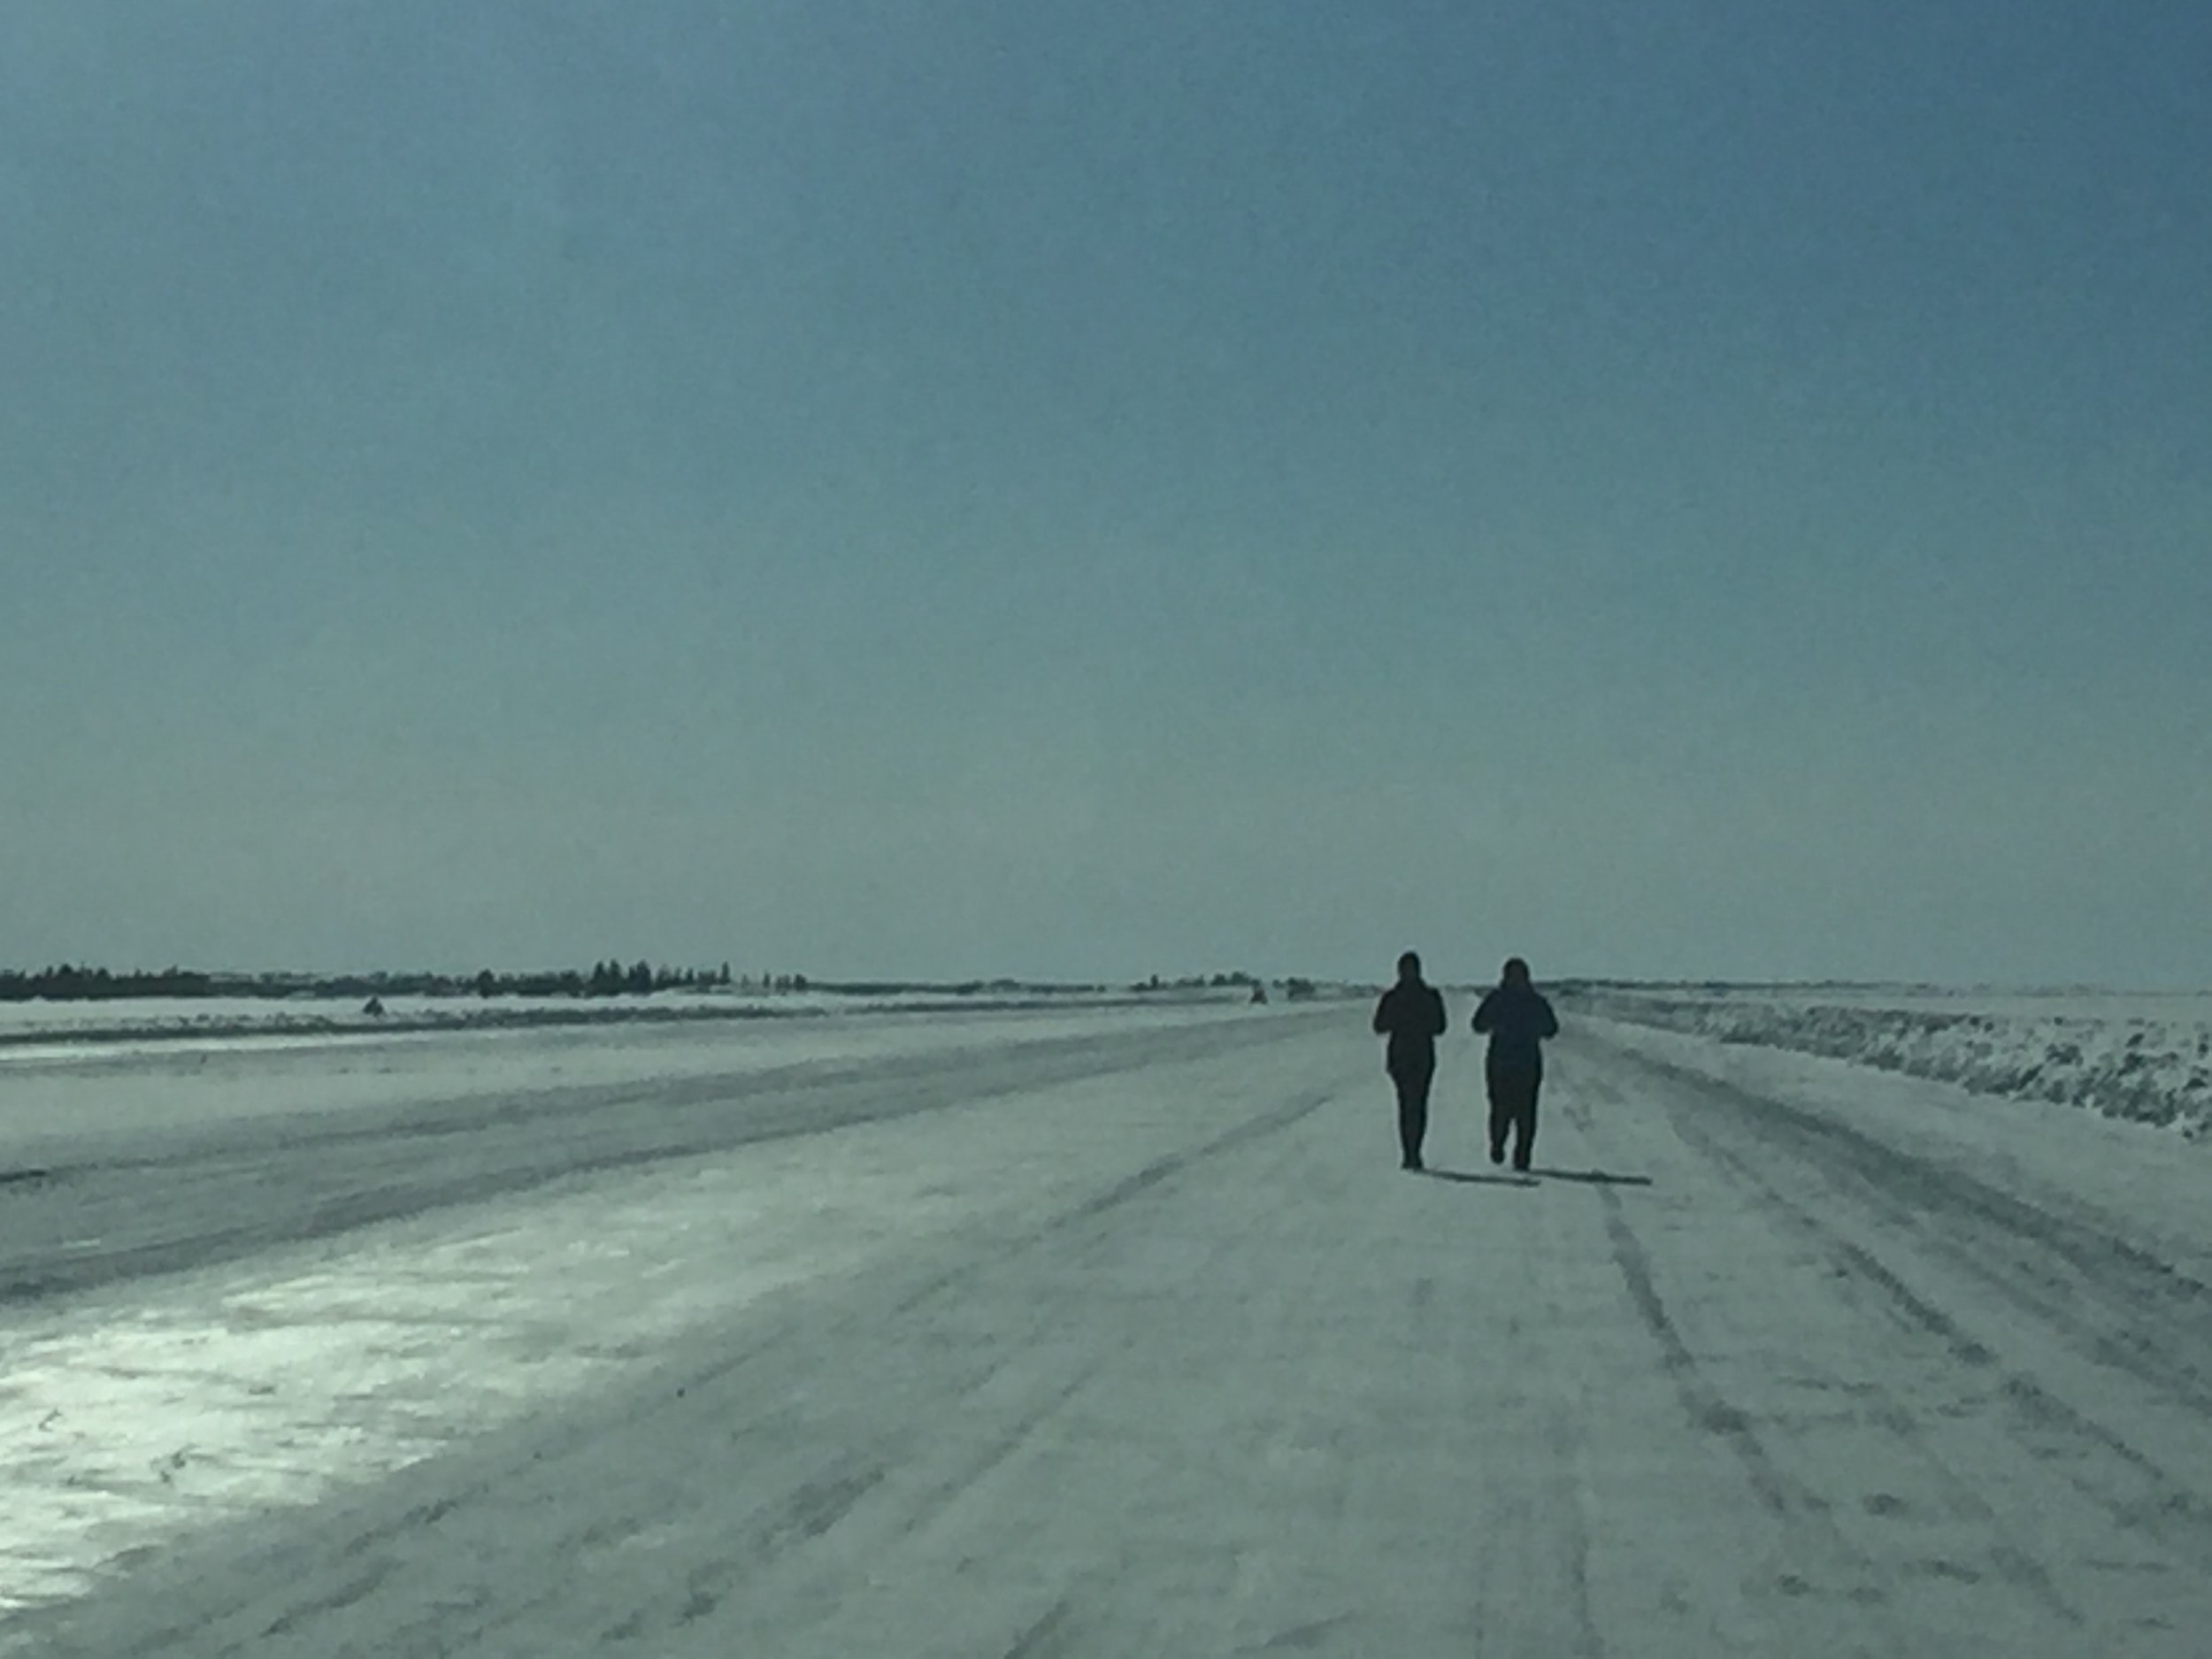 Joggers on the ice highway.